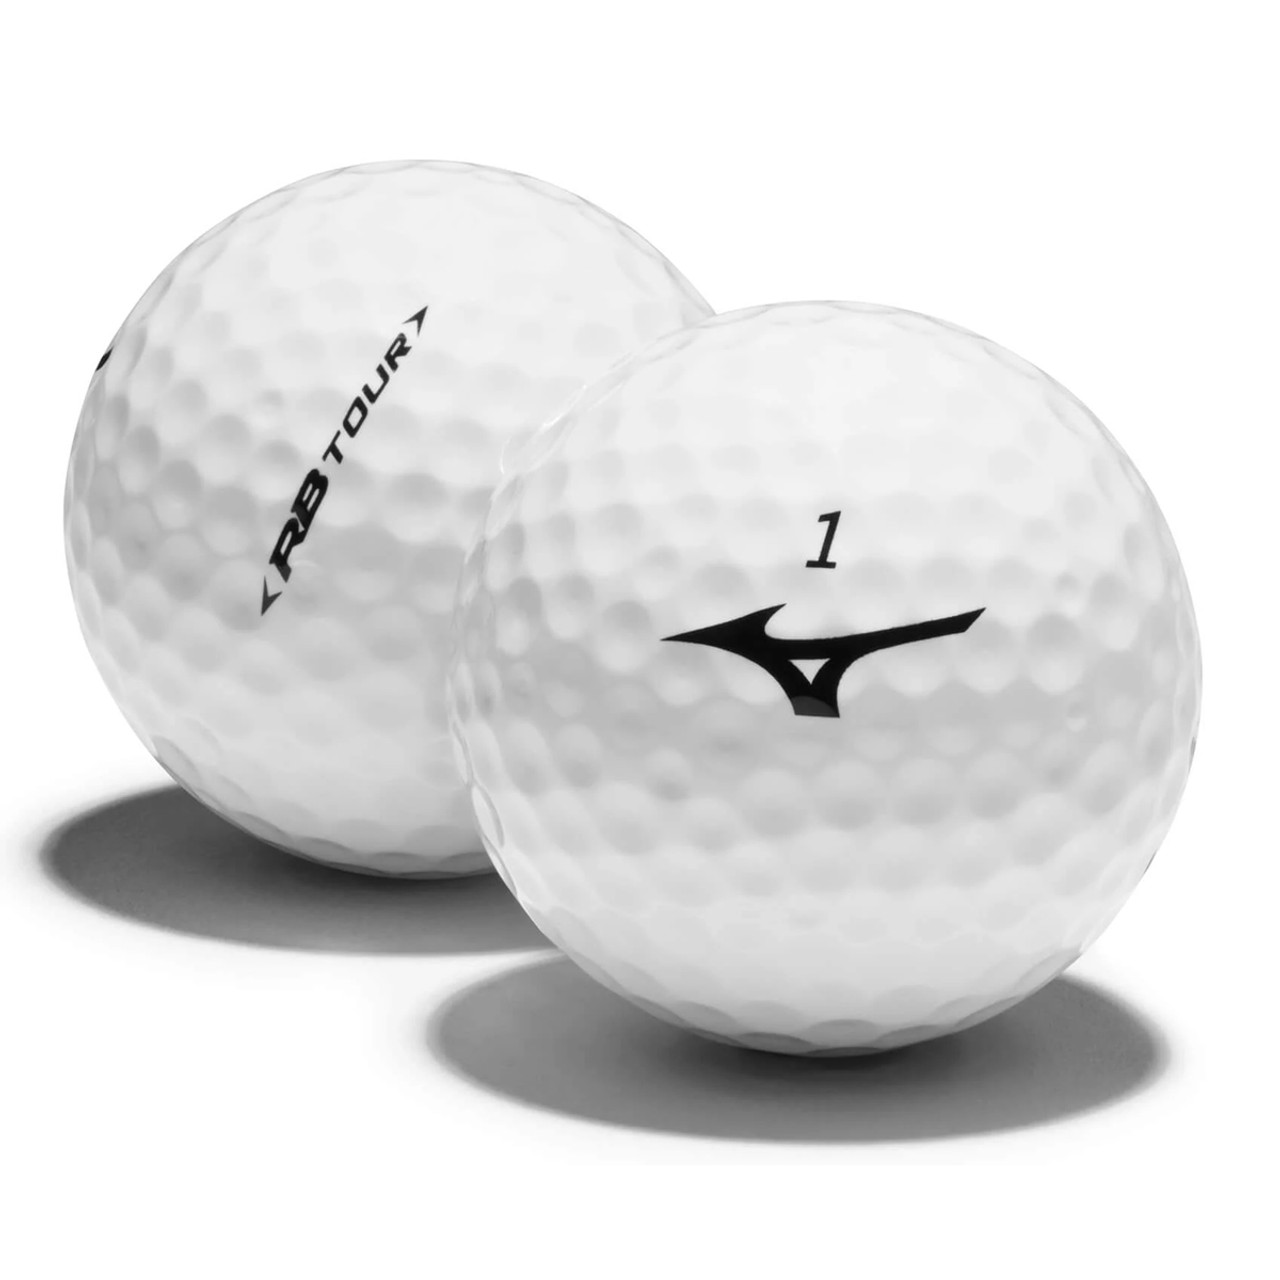 Mizuno RB Tour Dozen Golf Balls